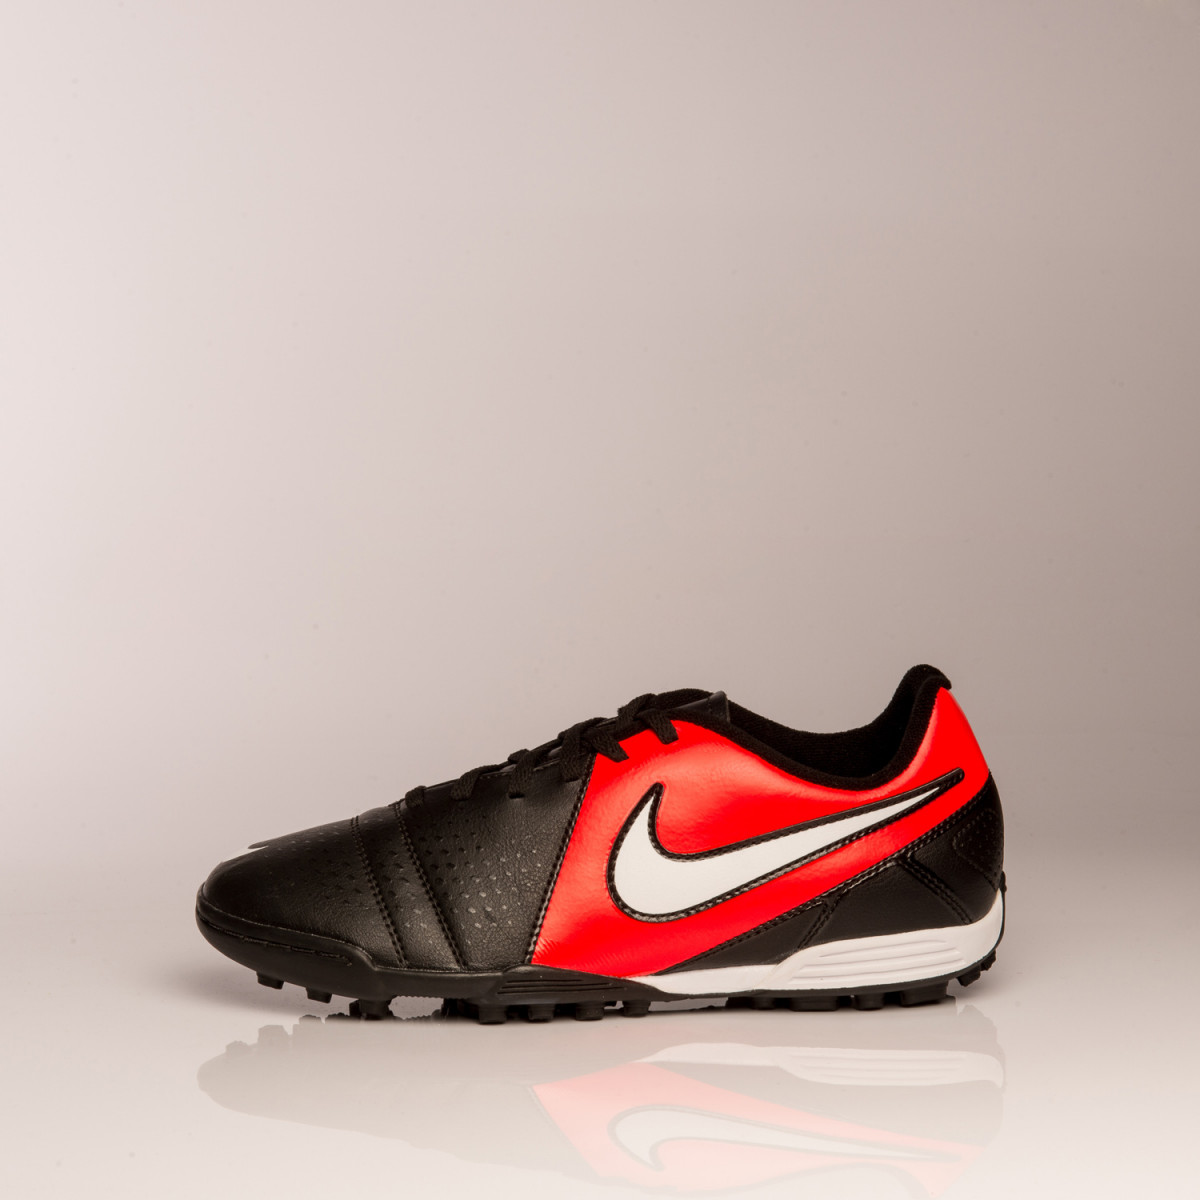 6d4ccf3062229 Botines Nike Ctr360 Enganche III Tf